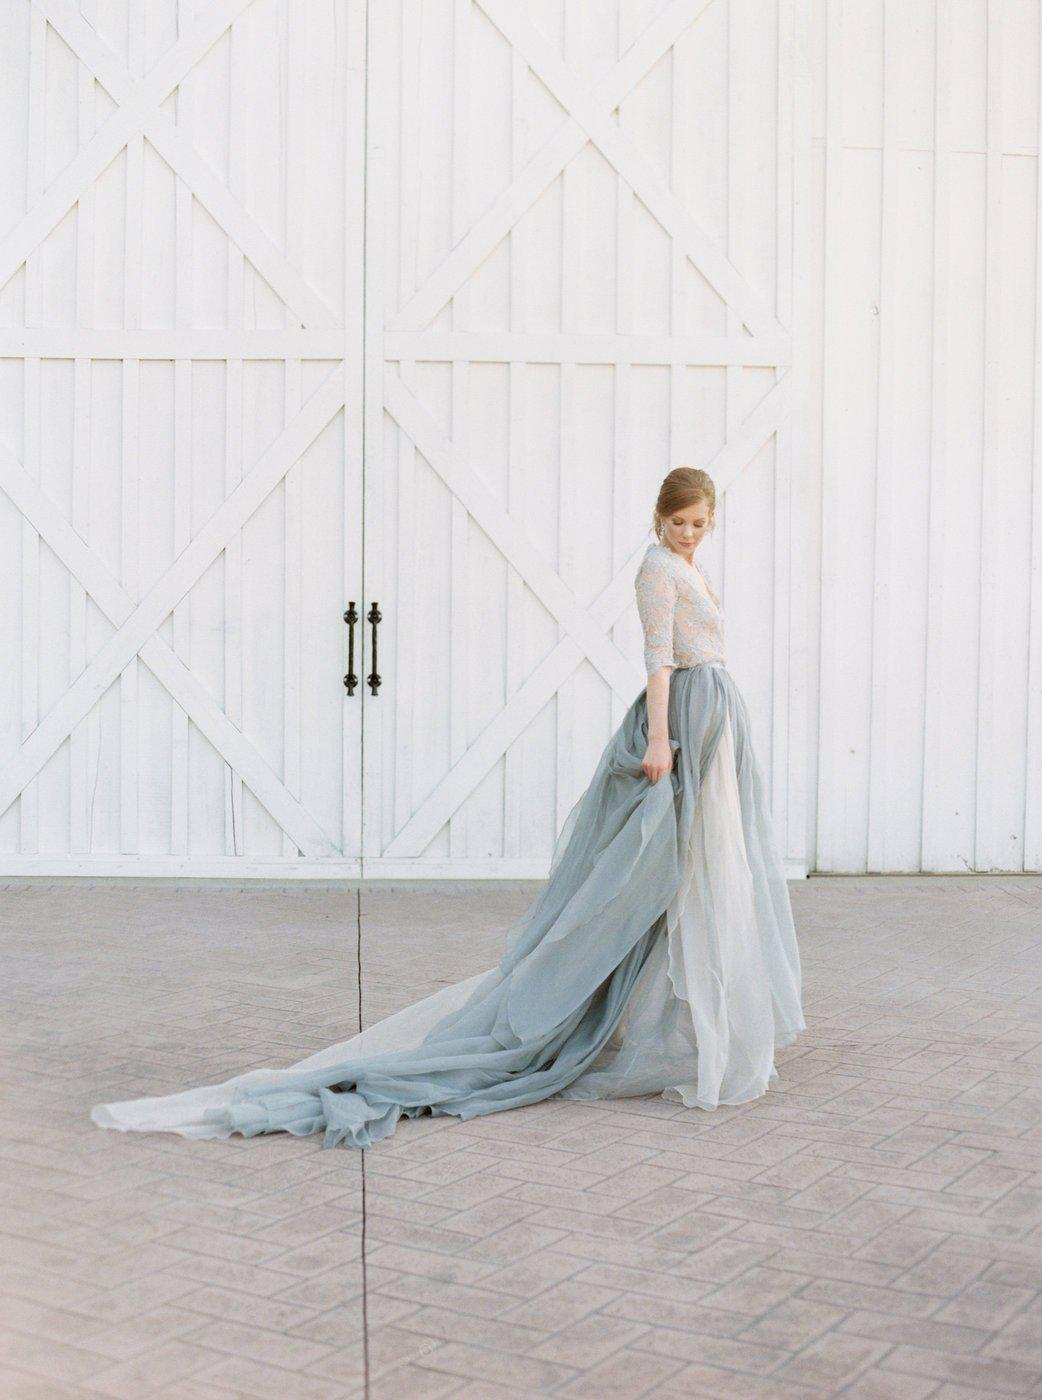 Women wearing a gray silk wedding dress wit lace sleeves